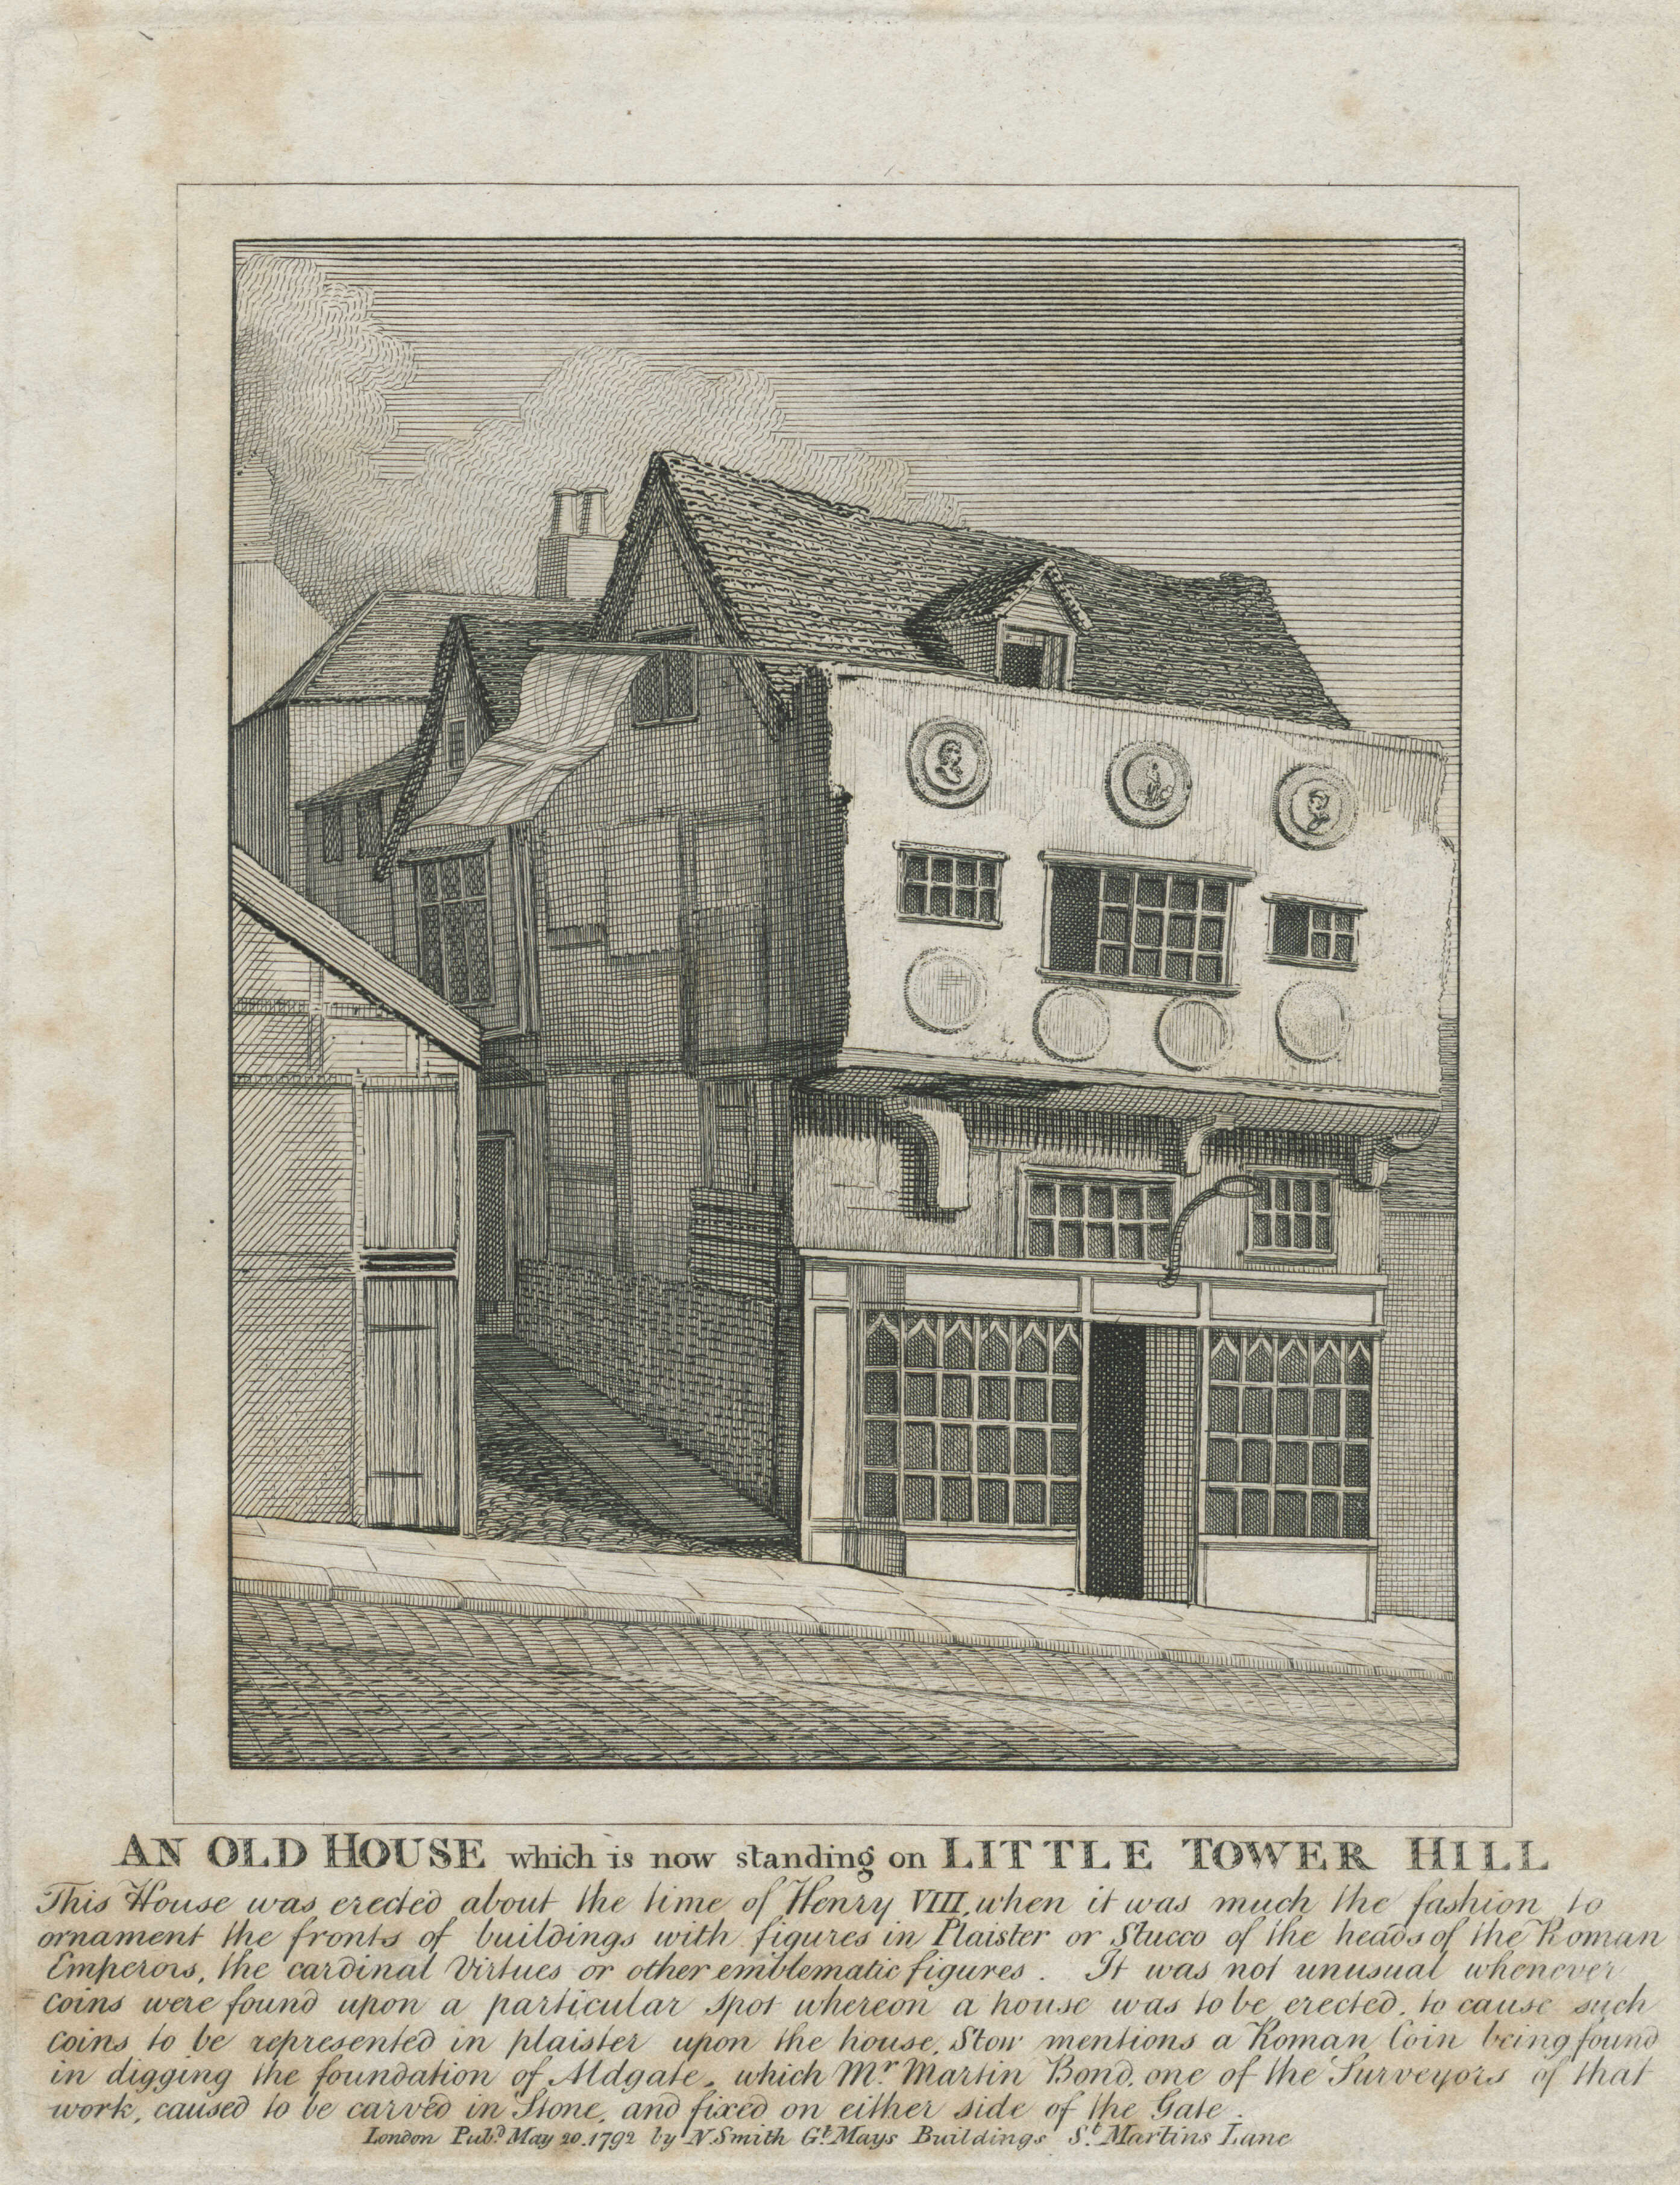 33-an-old-house-which-is-now-standing-on-little-tower-hill